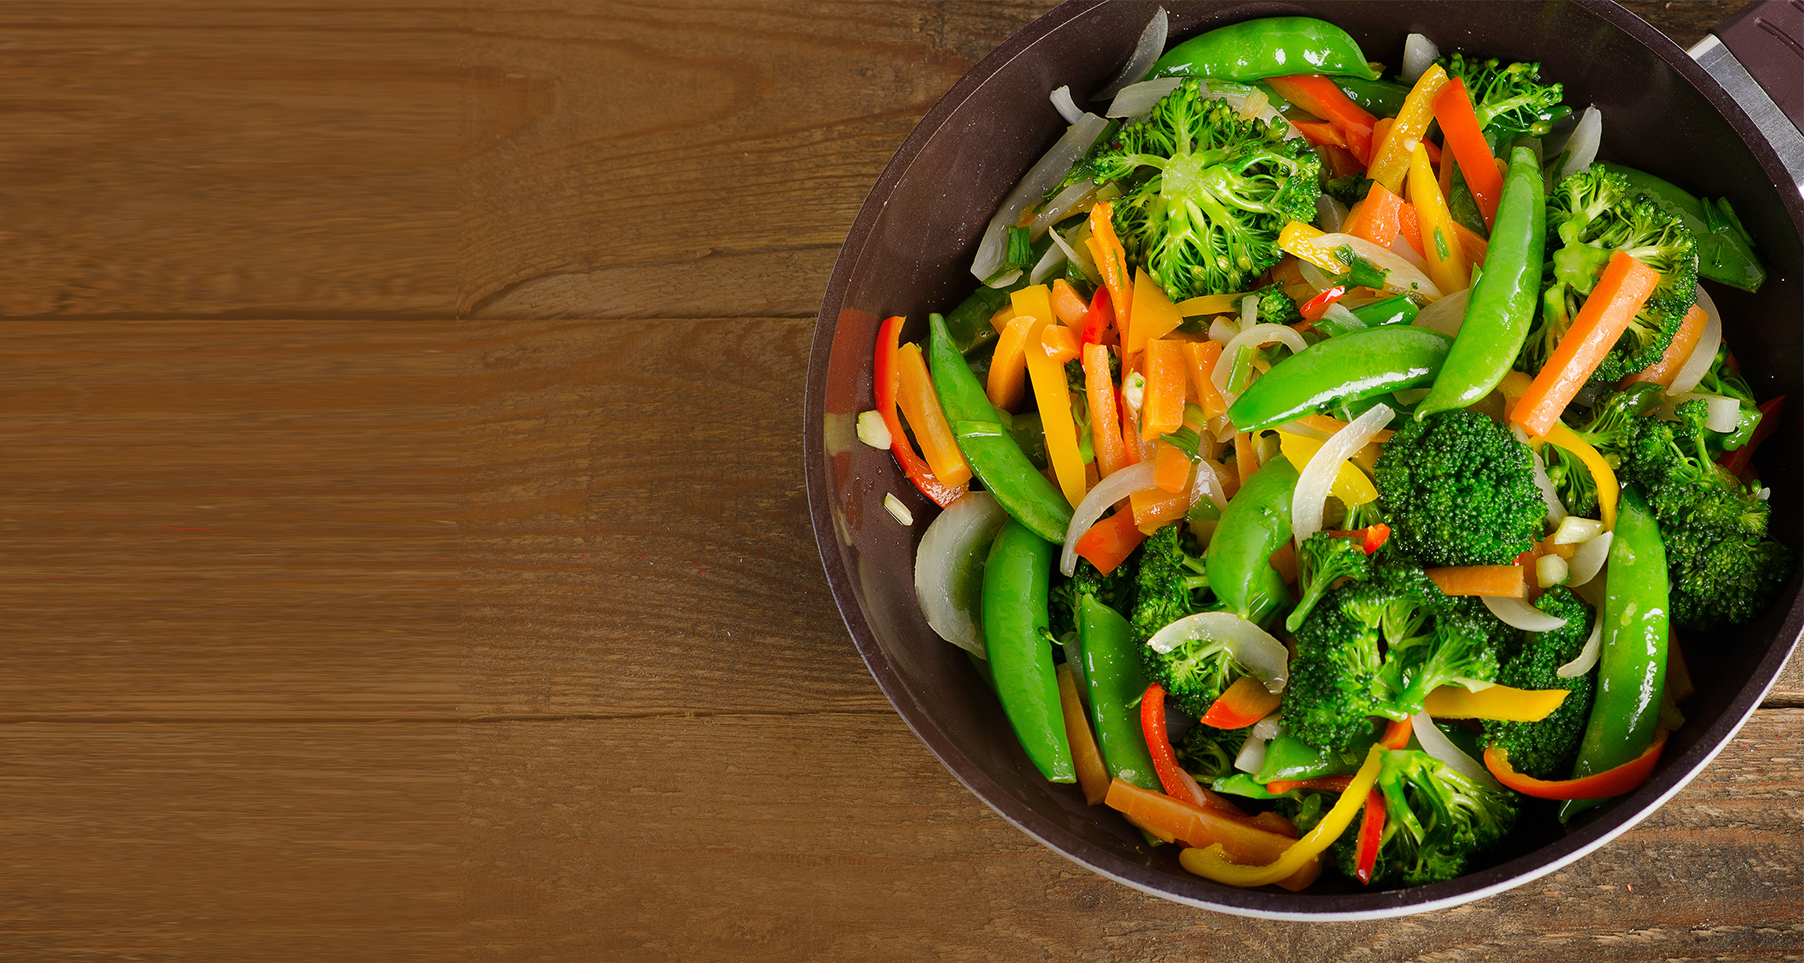 Banner_v1_25.1.2017_Almond and vegetable stir fry